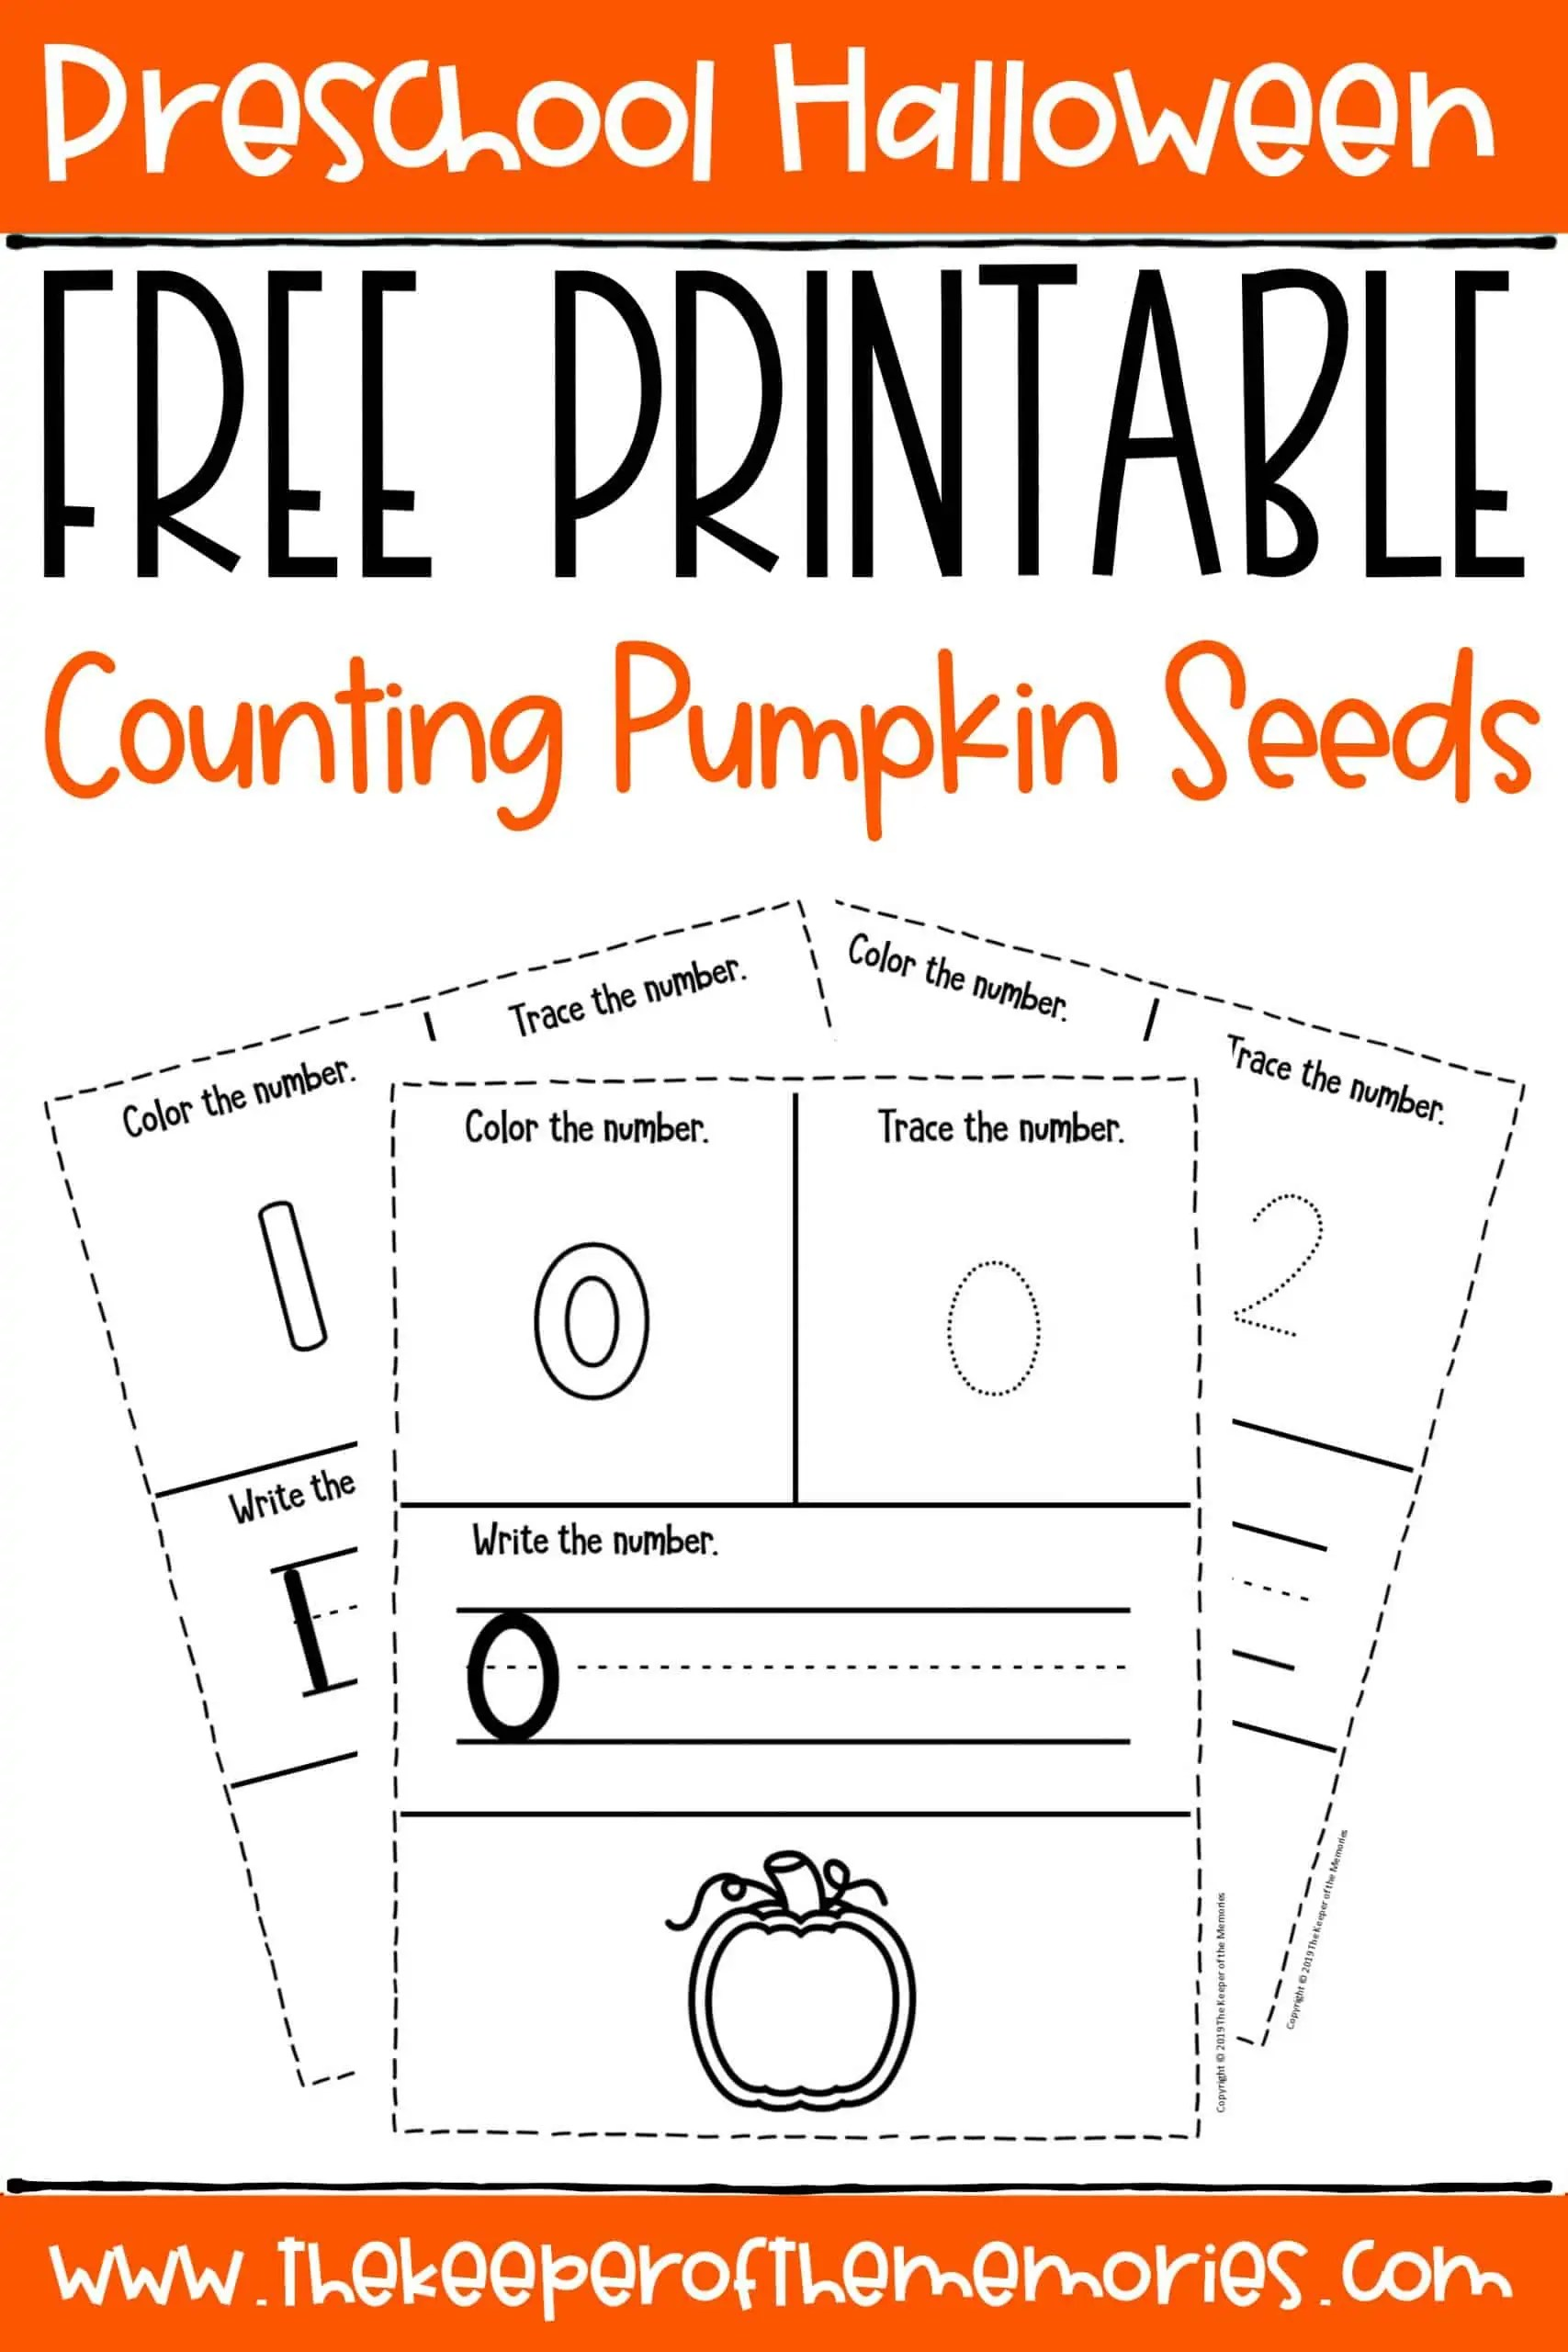 Free Printable Counting Pumpkin Seeds Halloween Preschool